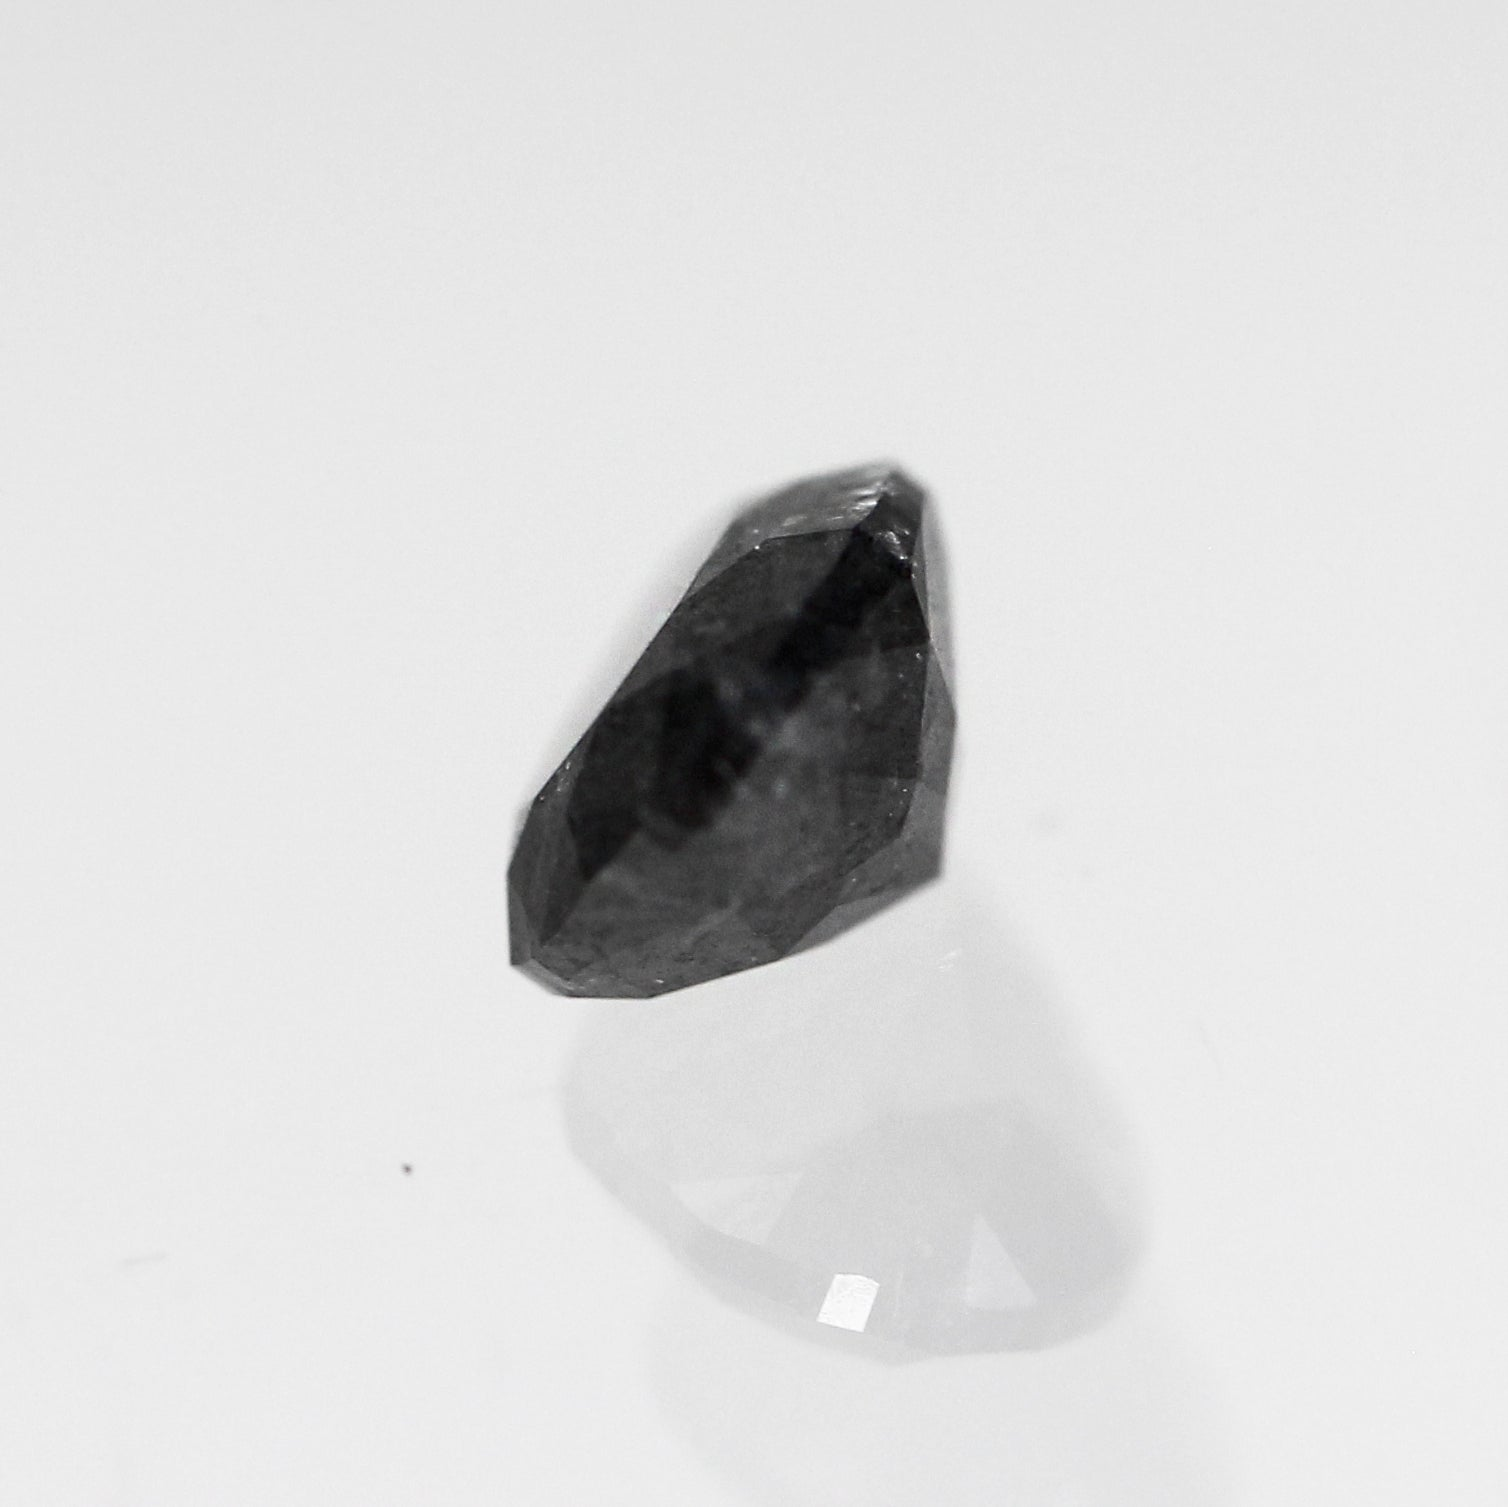 1.02 Carat Pear Celestial Diamond for Custom Work - Inventory Code PBB102 - Celestial Diamonds ® by Midwinter Co.